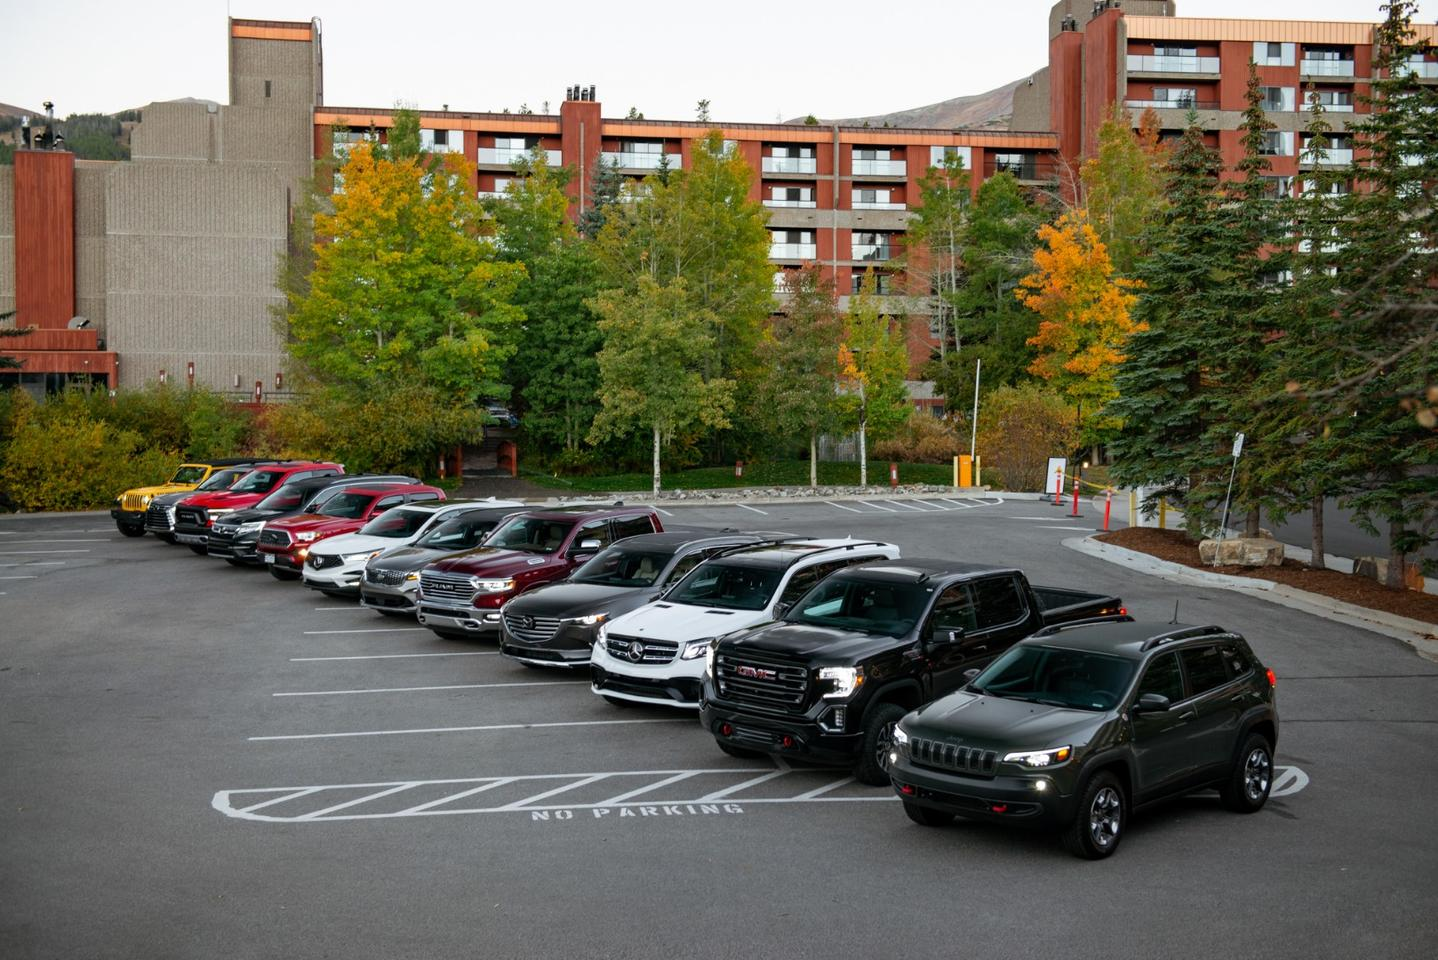 Our lineup of vehicles ready to depart from our hotel to the base camp near Breckenridge, Colorado